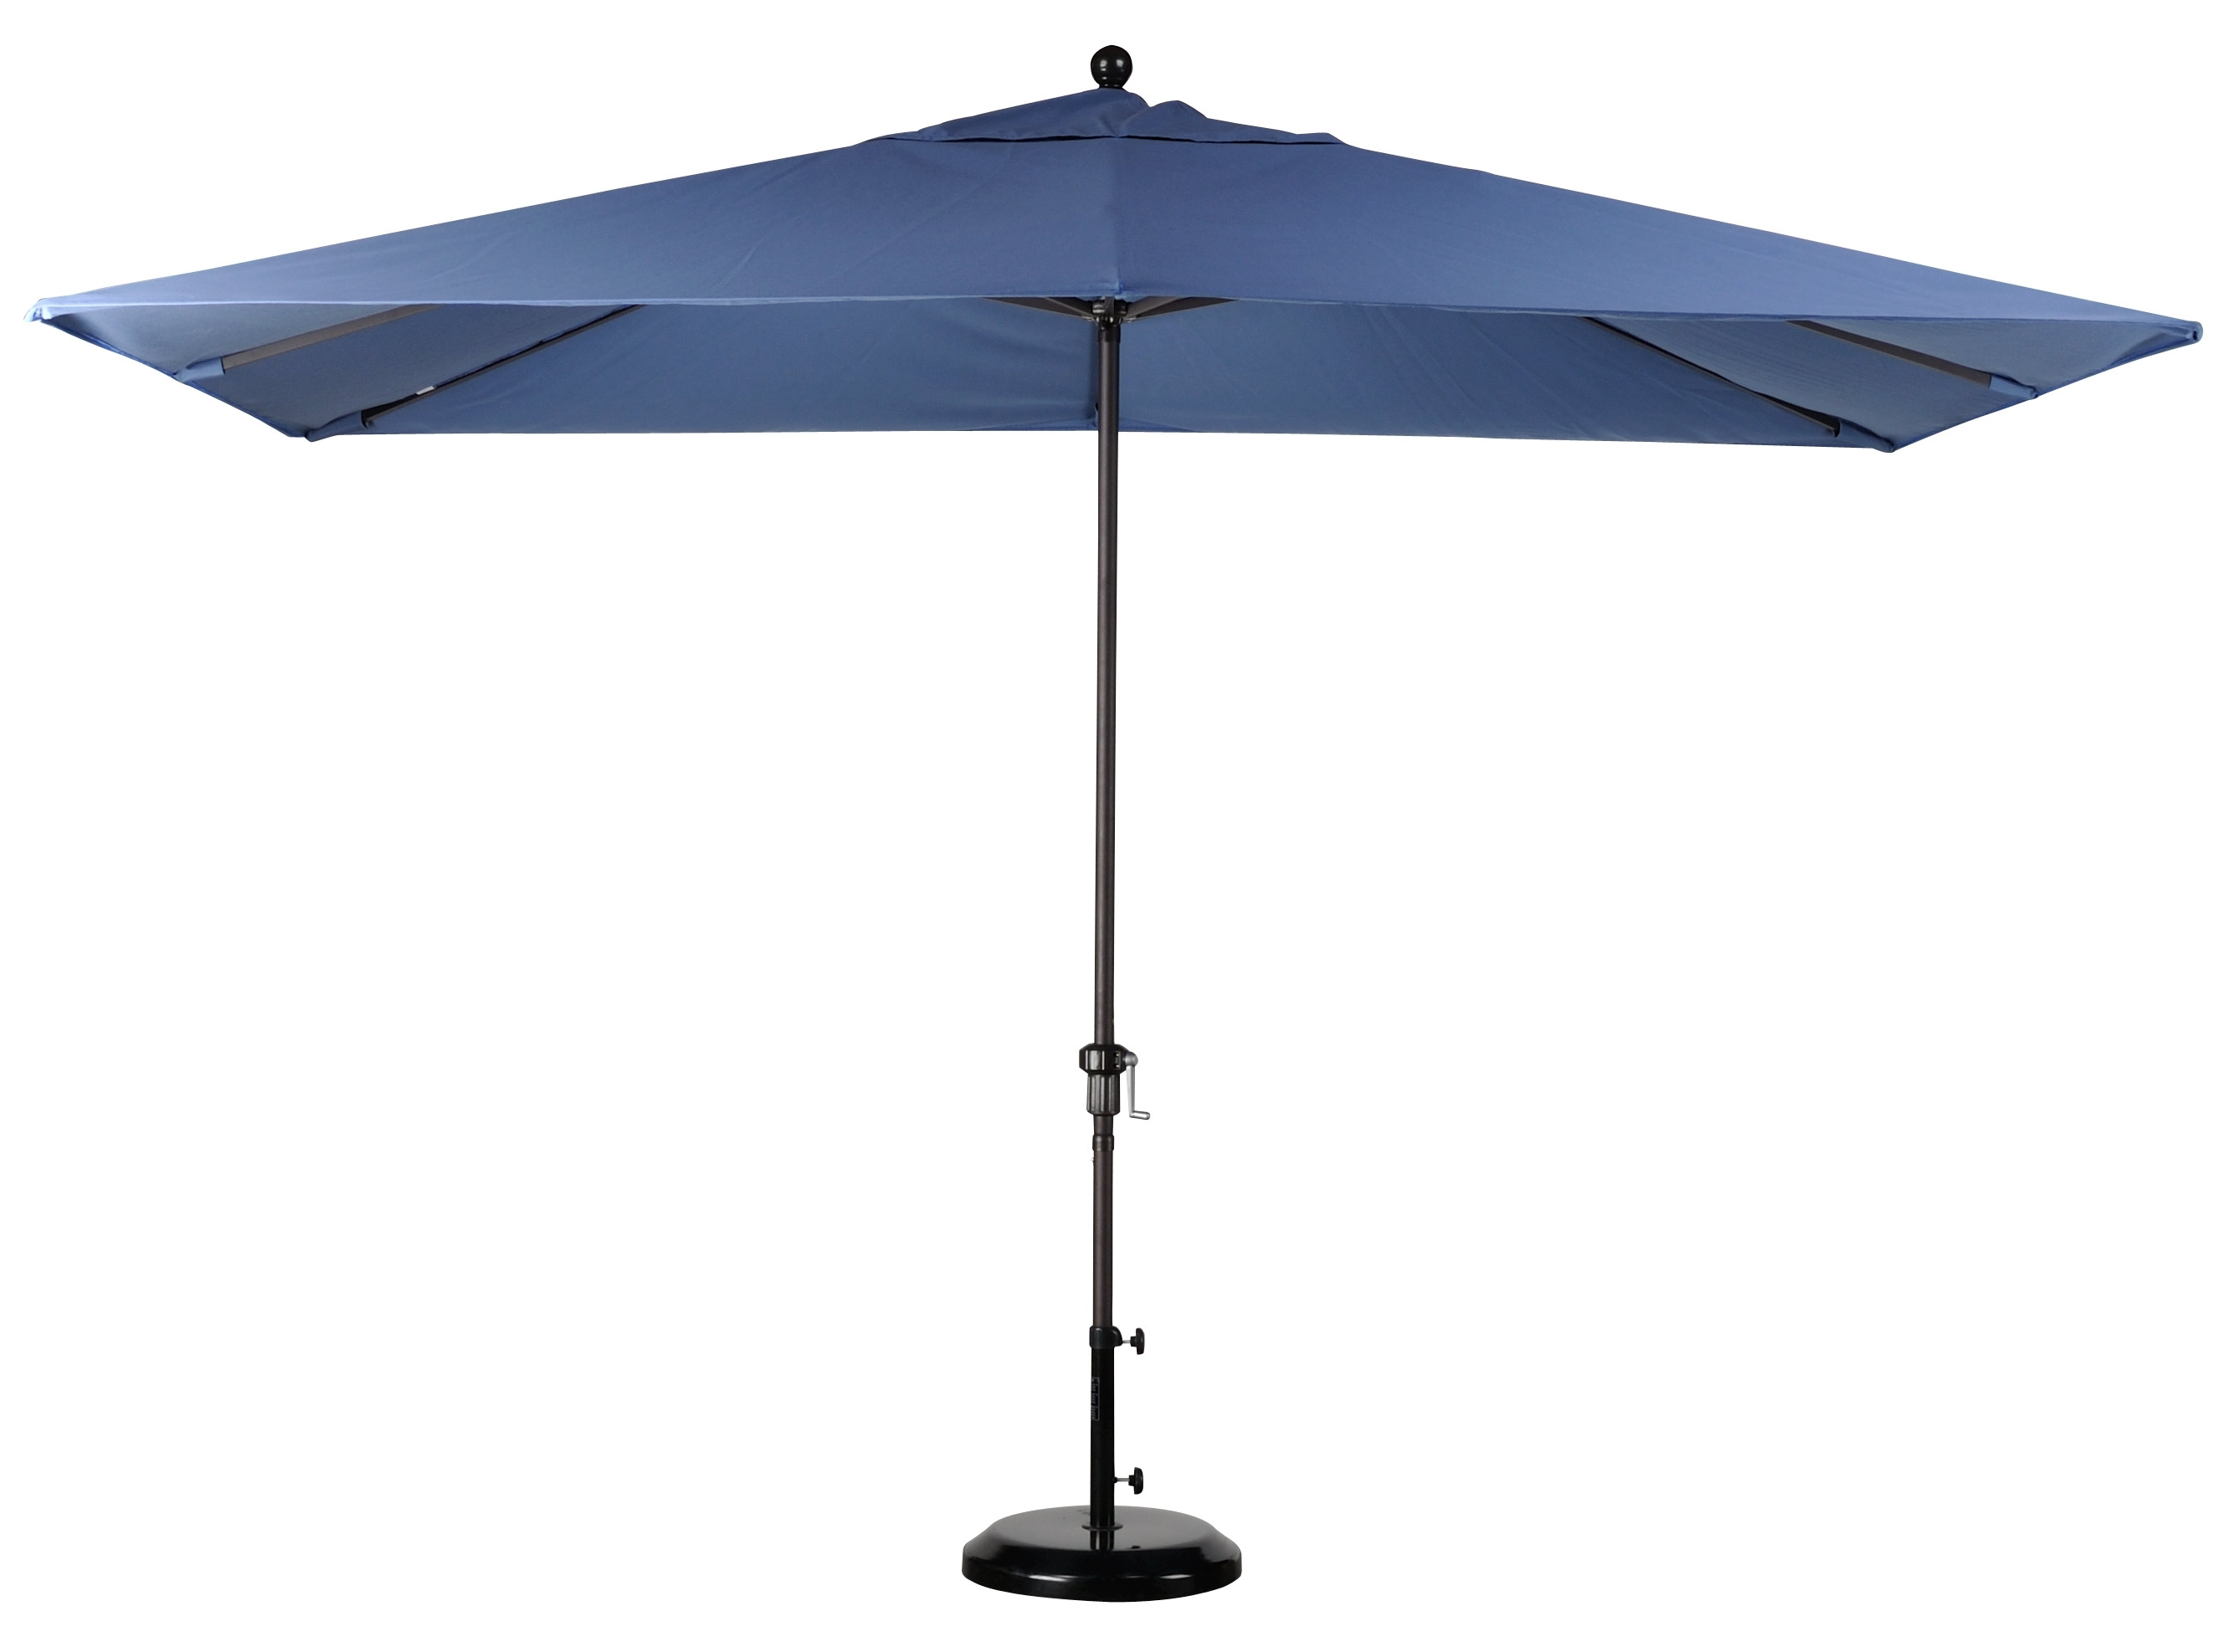 Best Selection Rectangular Market Umbrellas – Featuring Sunbrella Throughout Well Known Commercial Patio Umbrellas Sunbrella (Gallery 10 of 20)